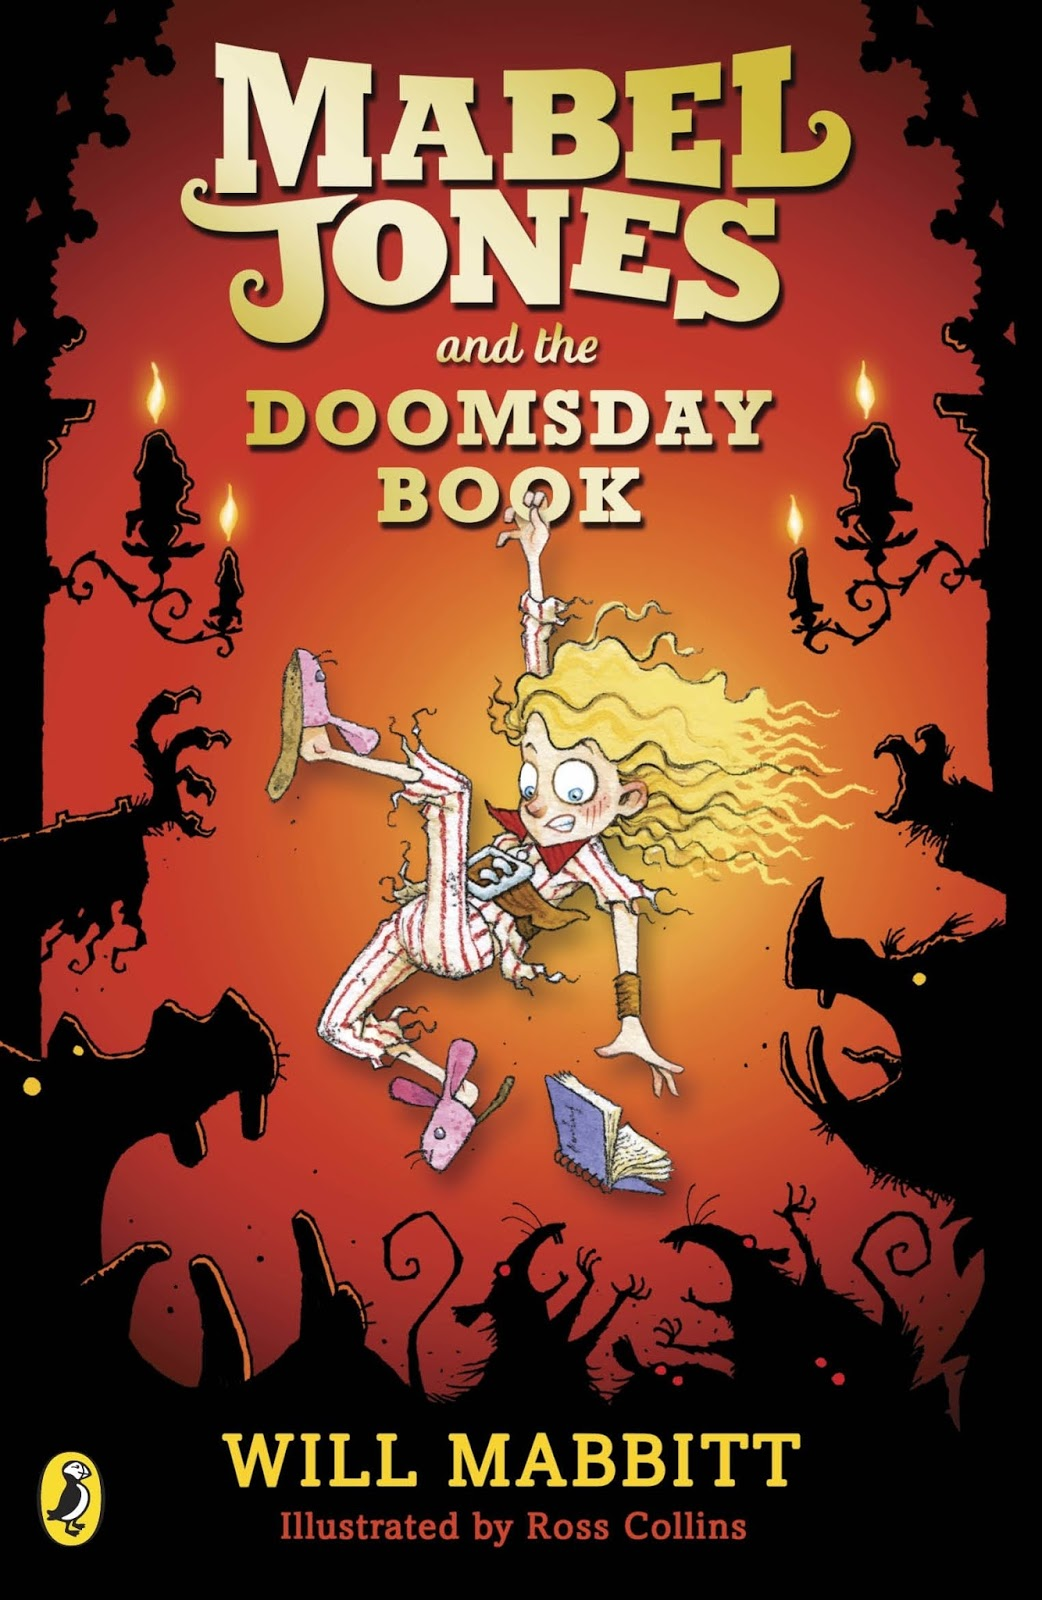 Book Five: Will Mabbitt  Mabel Jones And The Doomsday Book  Book Cover By  Ross Collins  Published By Puffin, Feb 2017  Vote Here